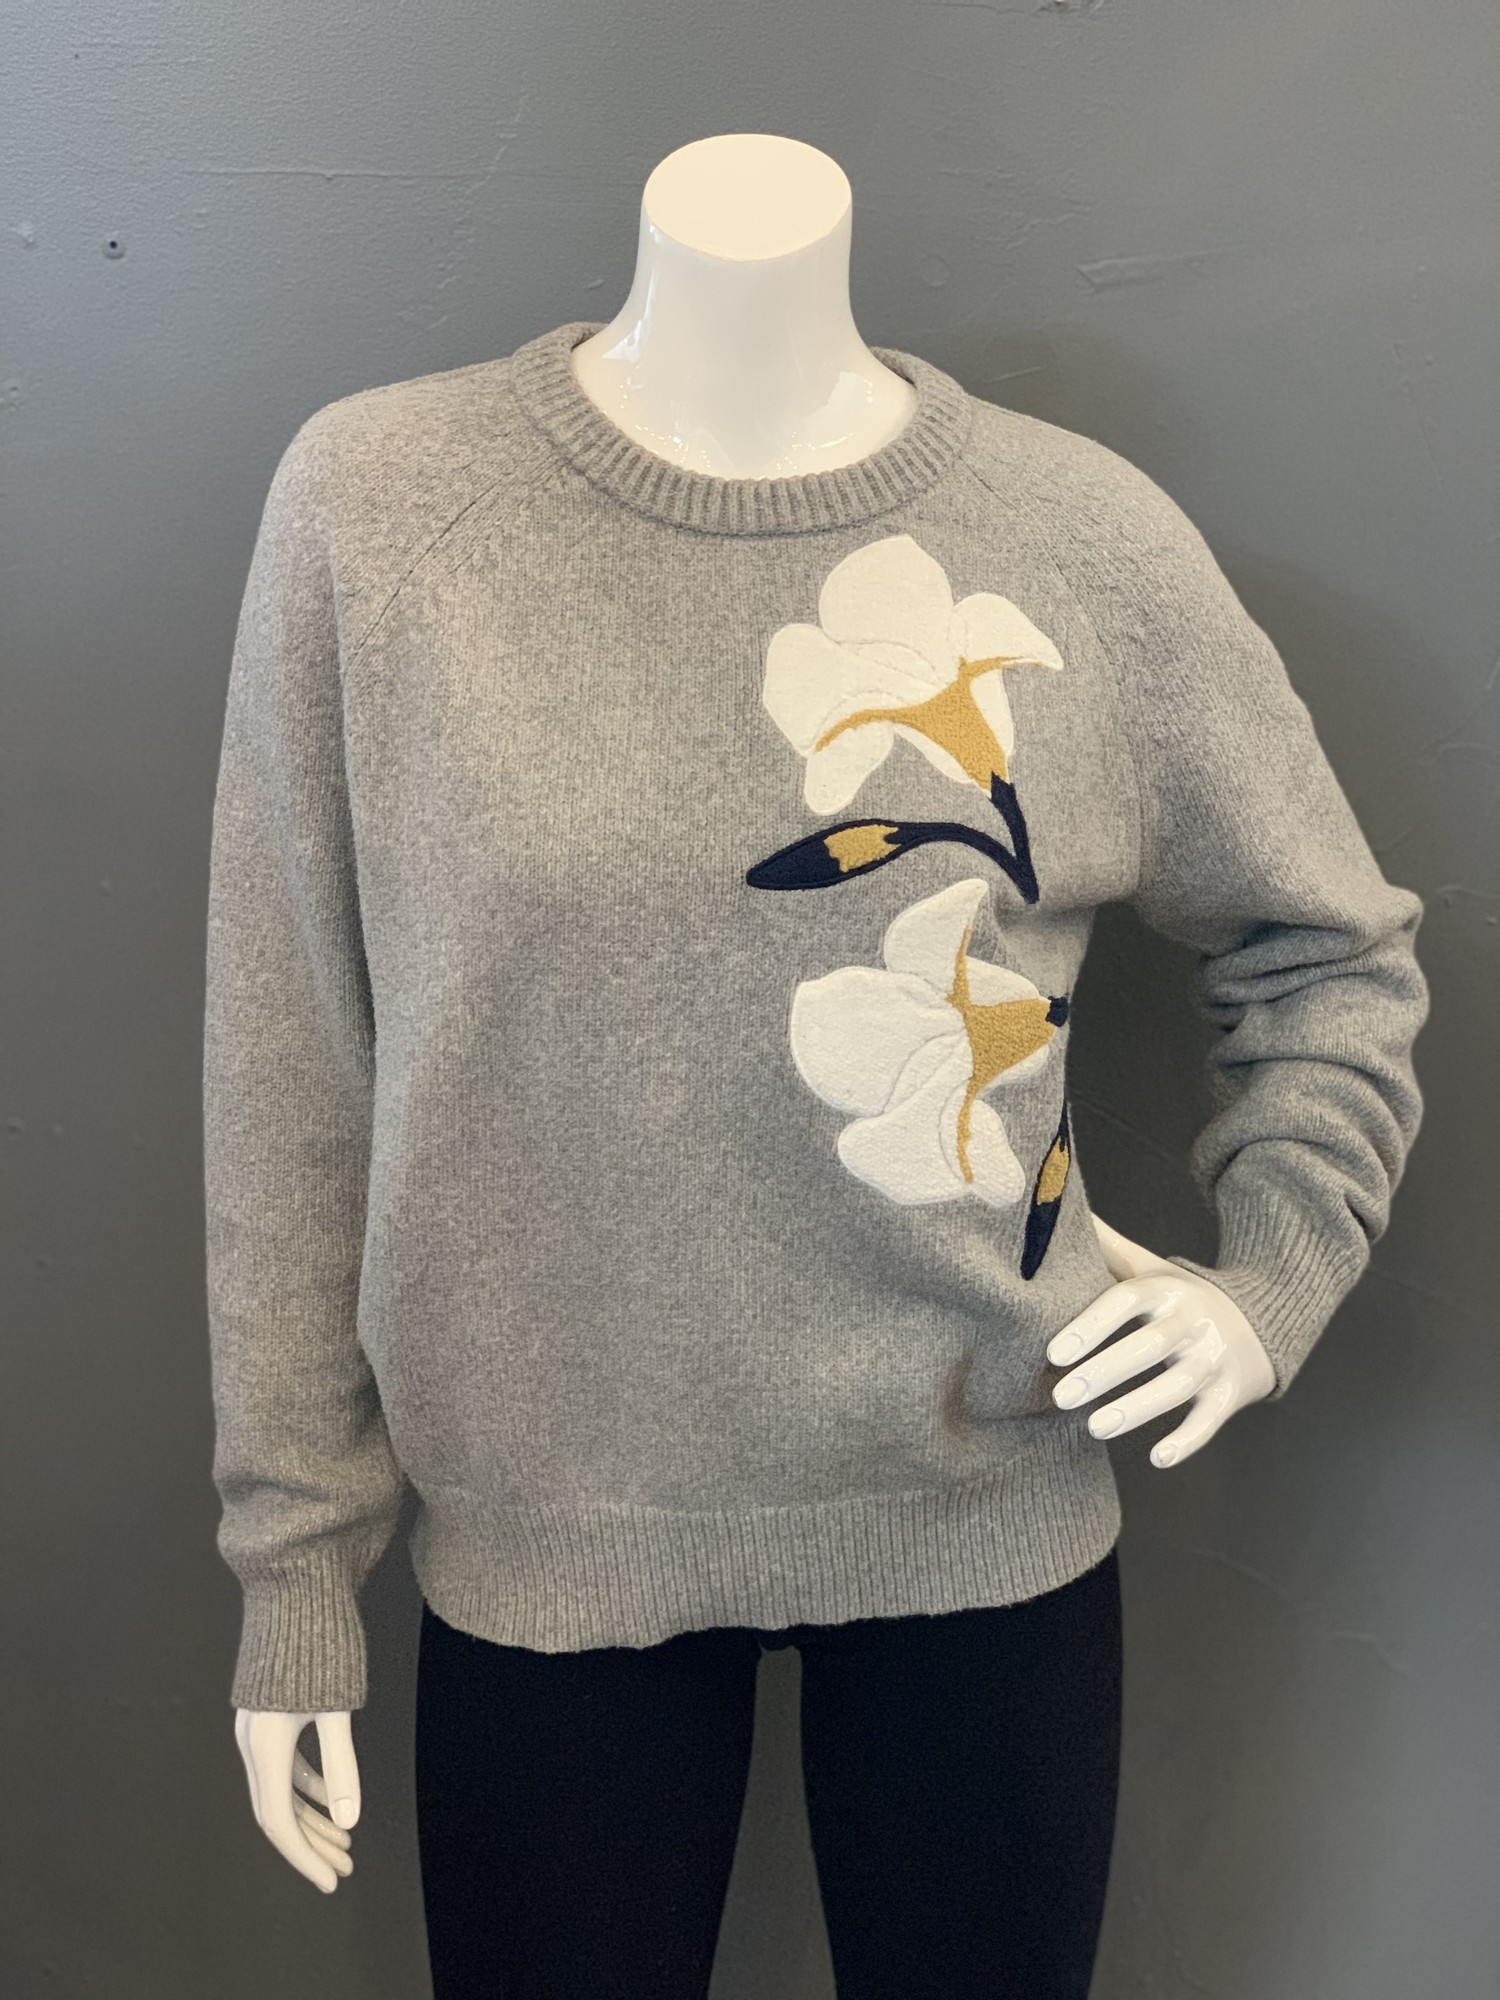 Brochu Walker Floral Knit, Grey, white, yellow. black<br /> Size: Small<br /> 75% cotton<br /> 25% polyester